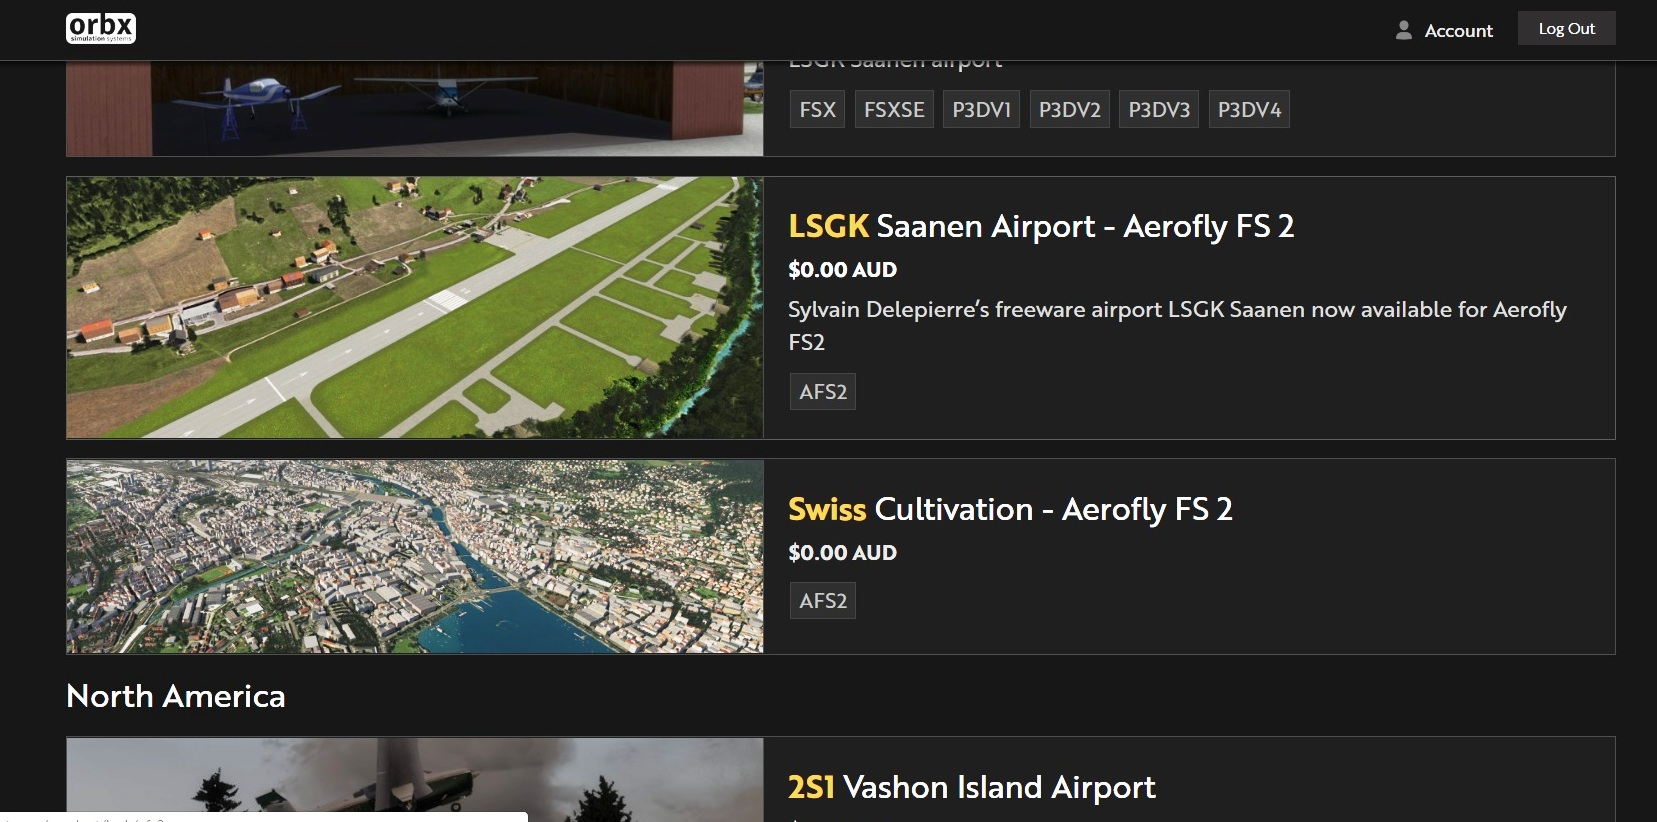 Swiss cultivation free from ORBX - General discussions